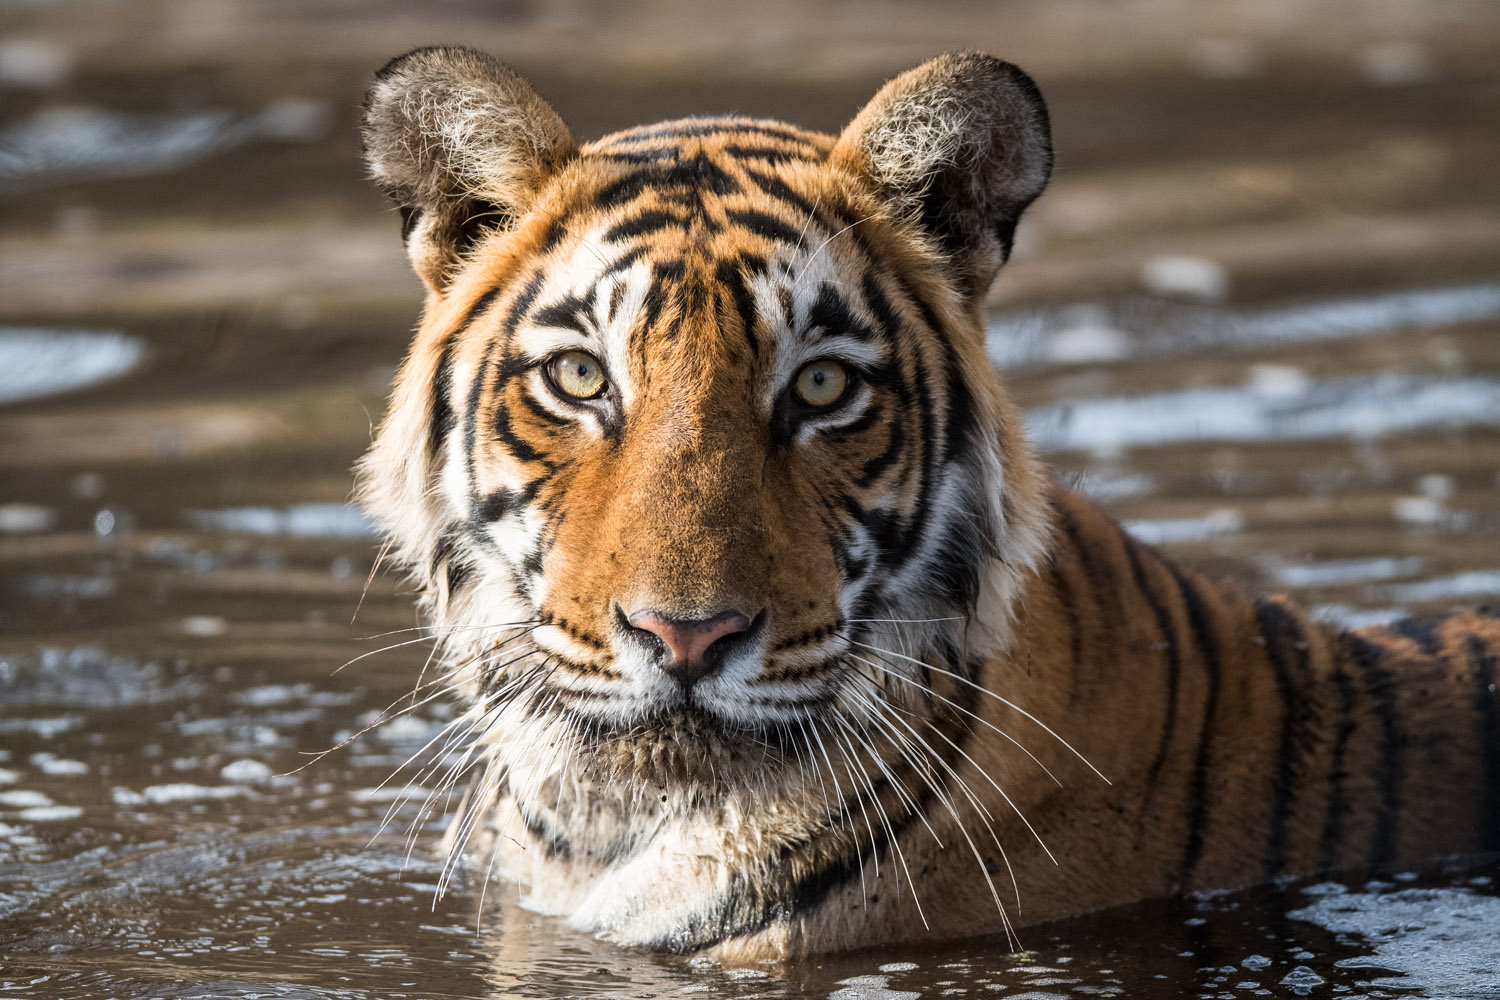 Bengal tigress bathing in pool, Ranthambhore National Park, Rajasthan, India